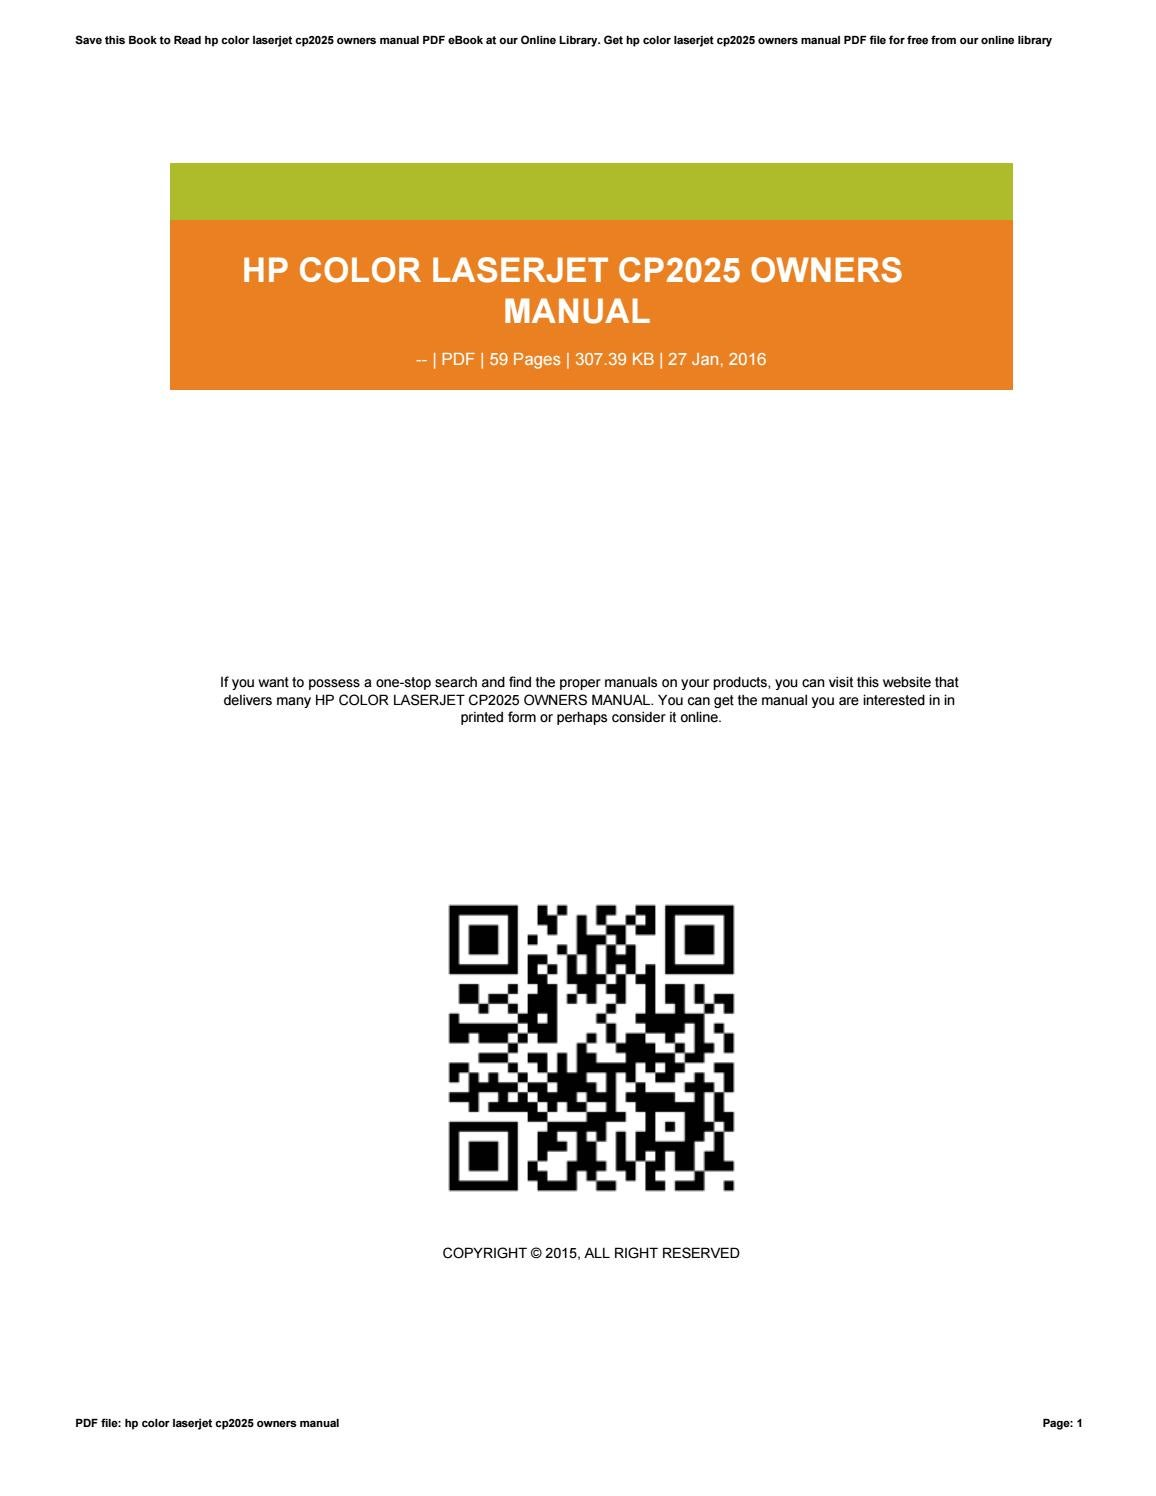 Hp color laserjet cp2025 owners manual by jasmine763jsiwos - issuu